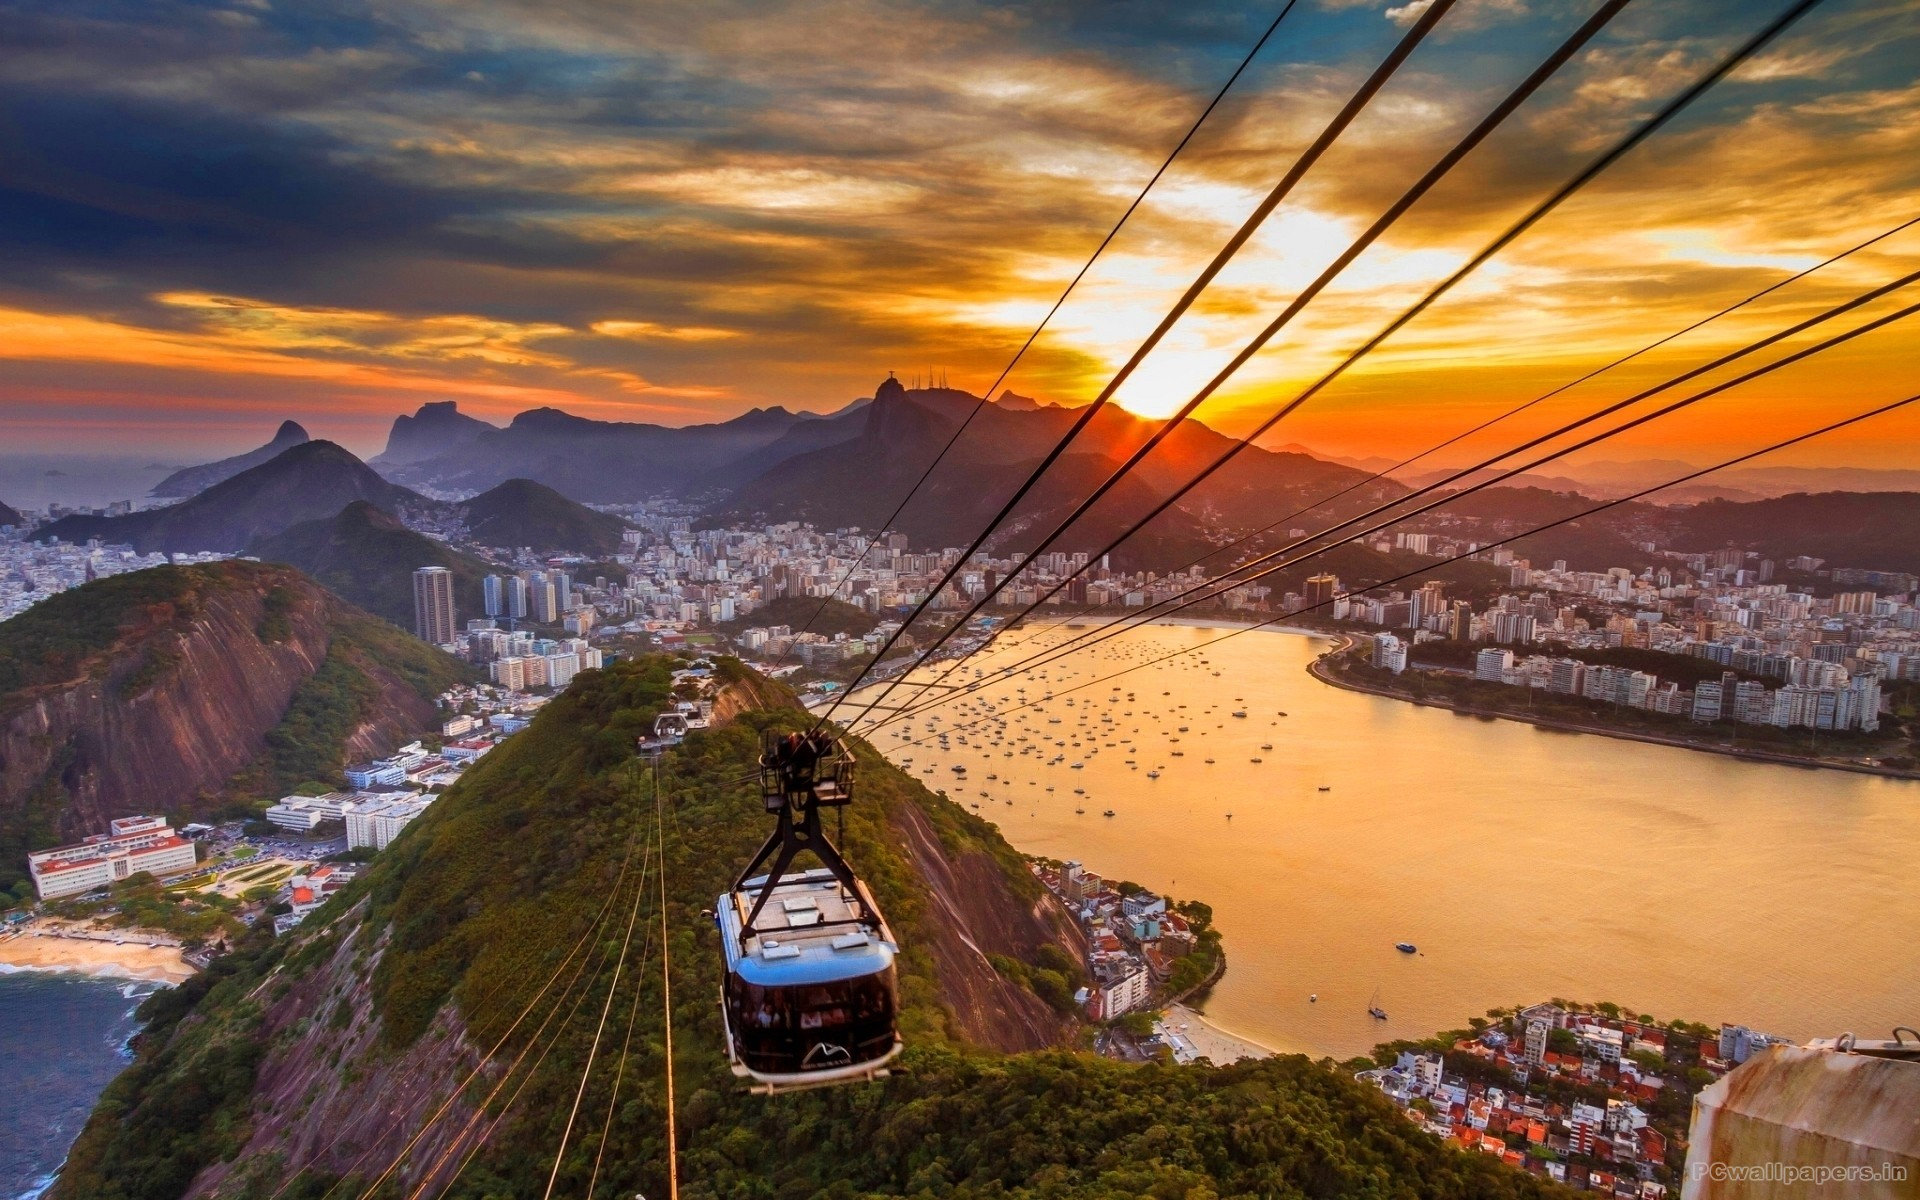 Rio de Janeiro Highlights of South America South American Travel Specialists Sugarloaf Mountain Guanabara Bay